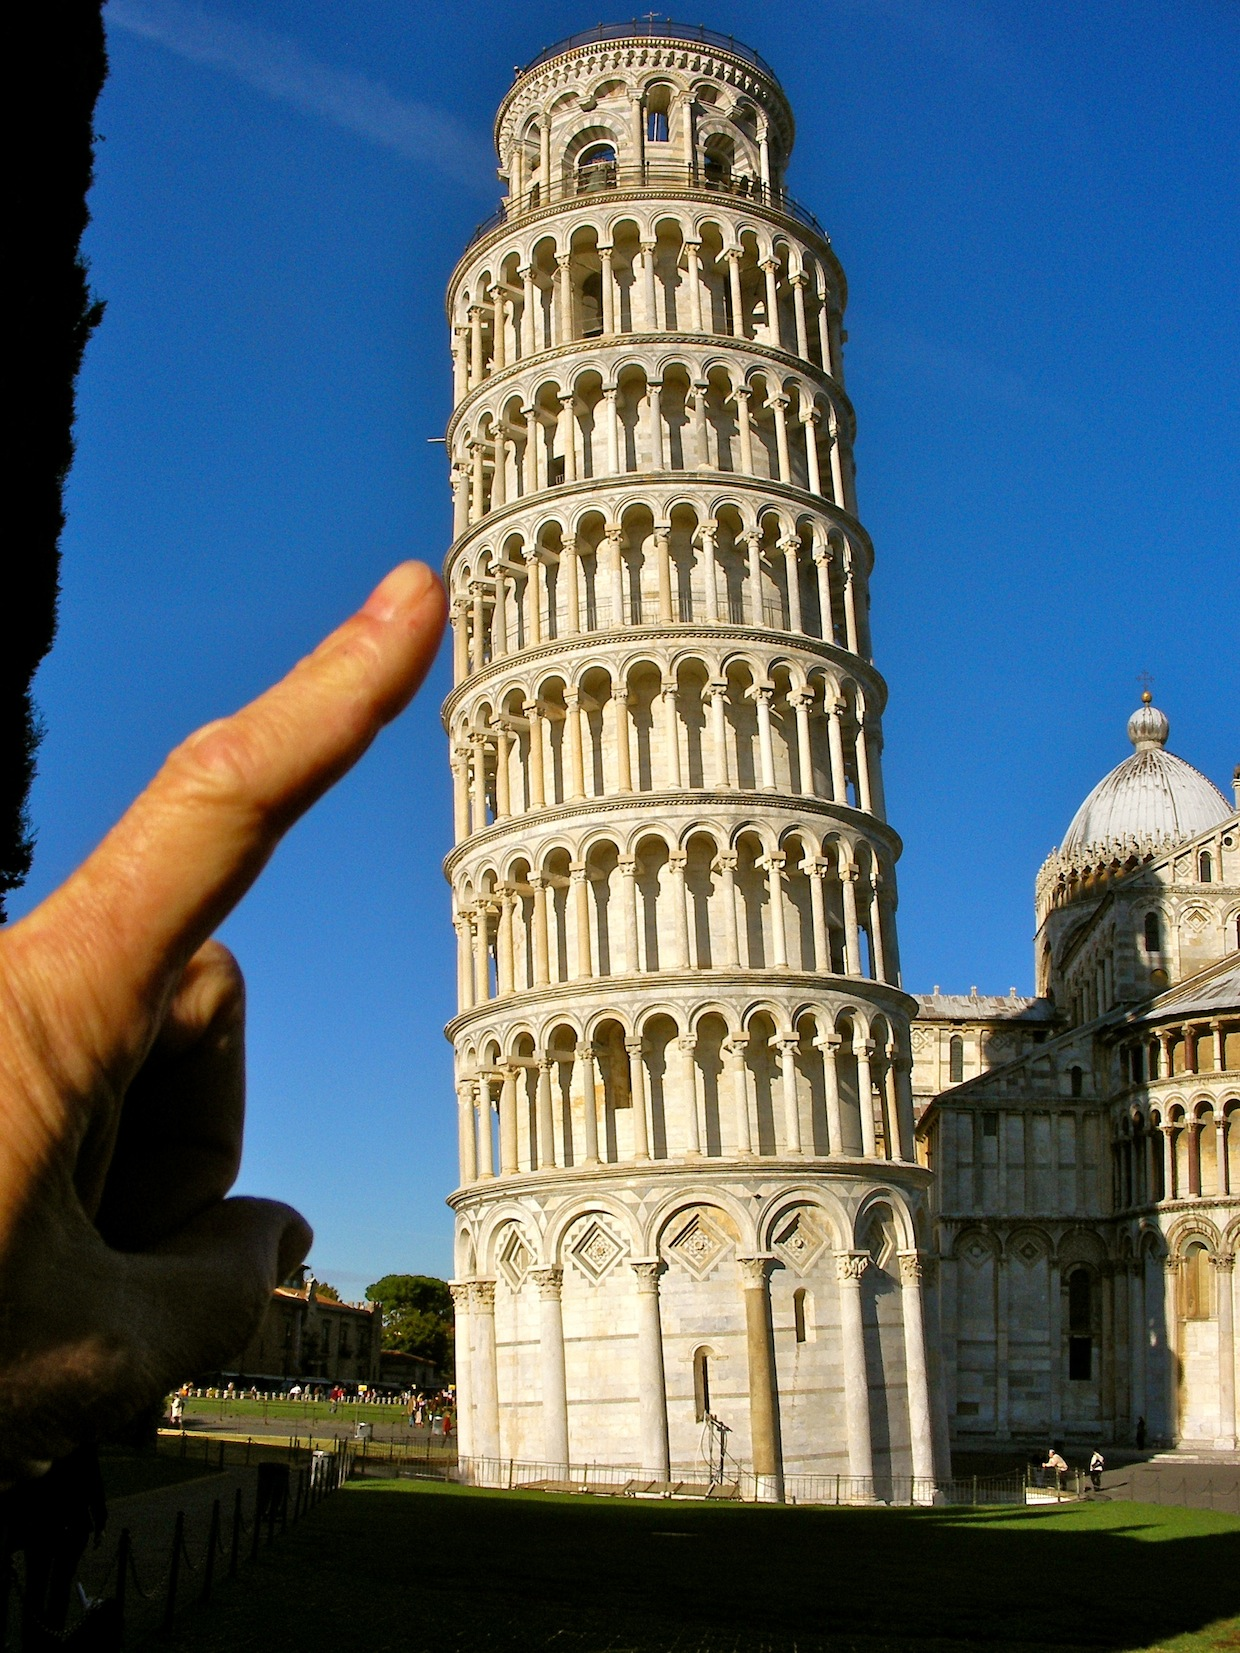 Leaning tower of pisa anotherdayinparadise2 39 s blog - Leaning tower of pisa ...